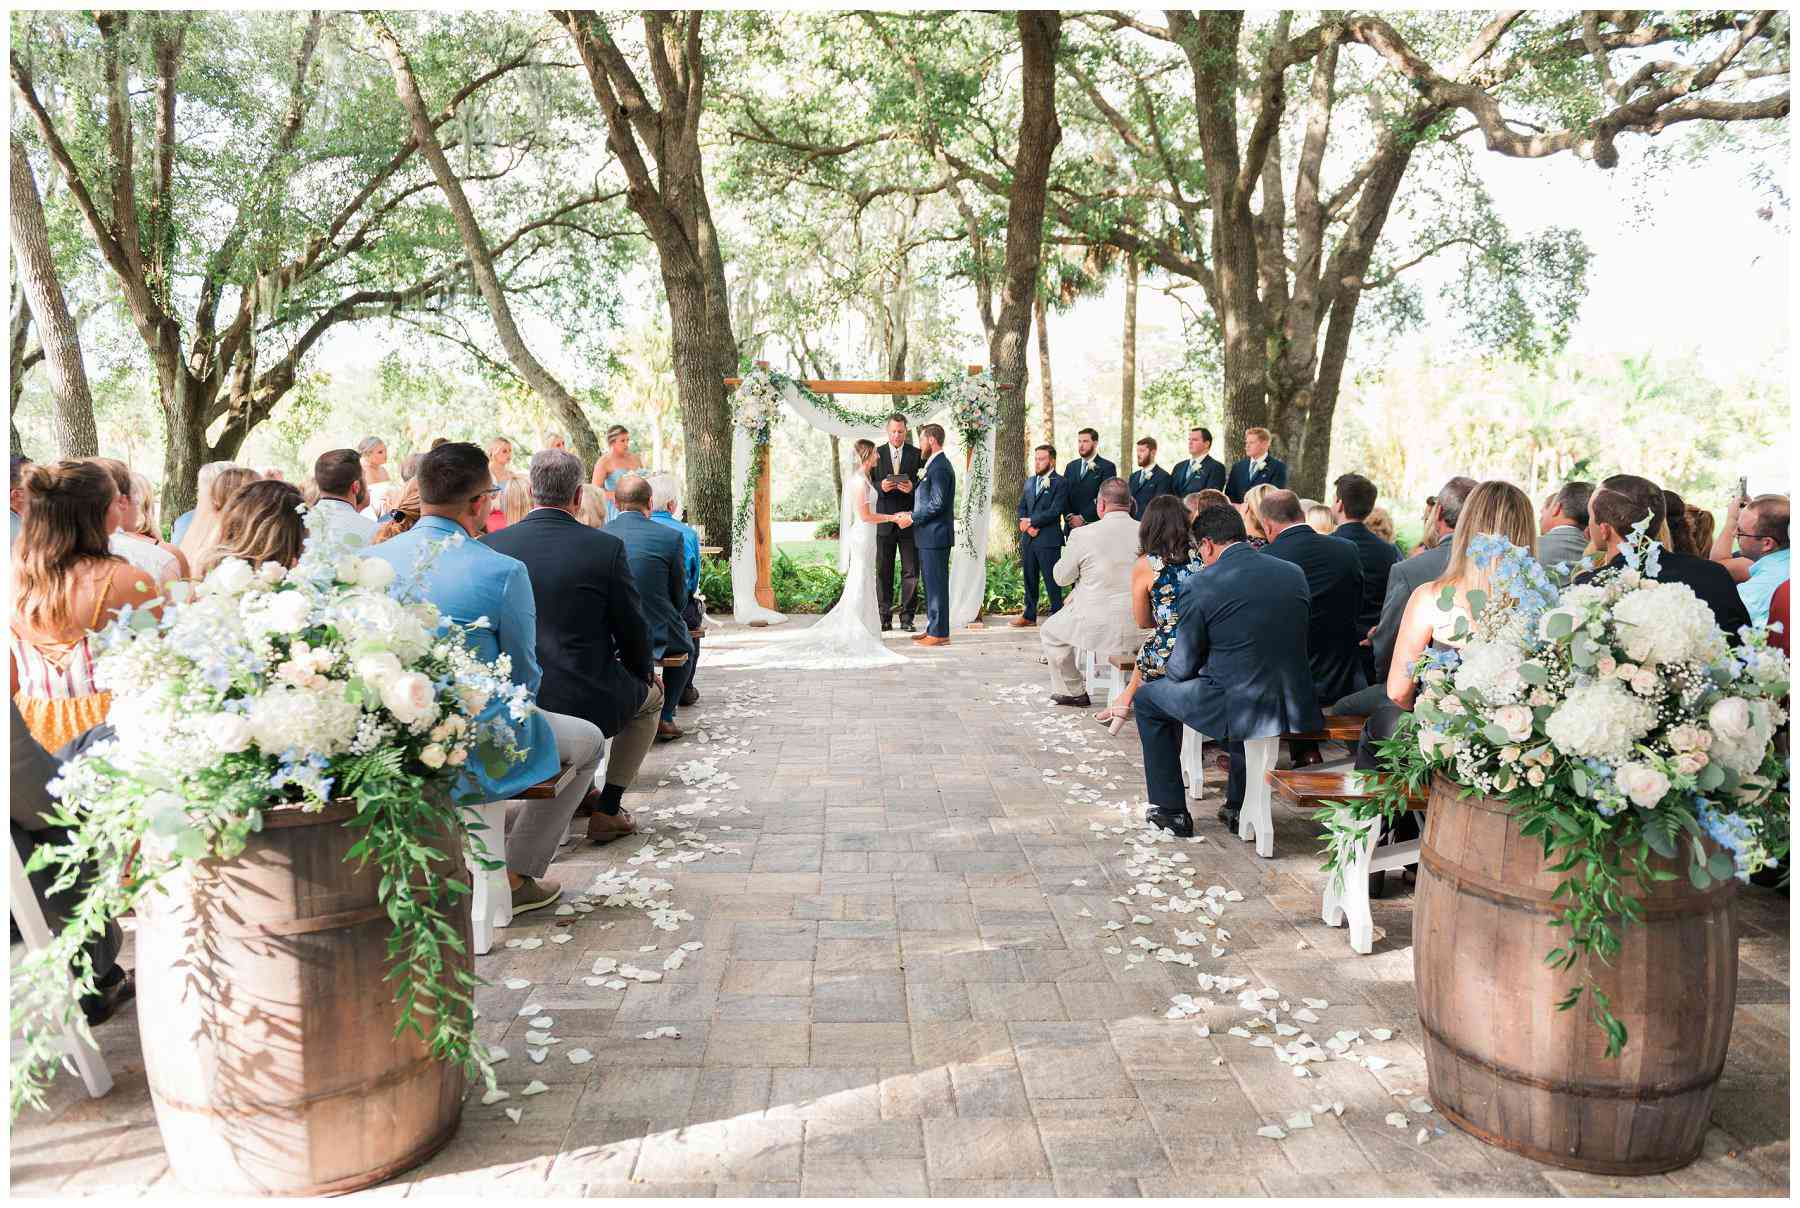 Wedding ceremony under oak canopy at Up the Creek Farms in Melbourne